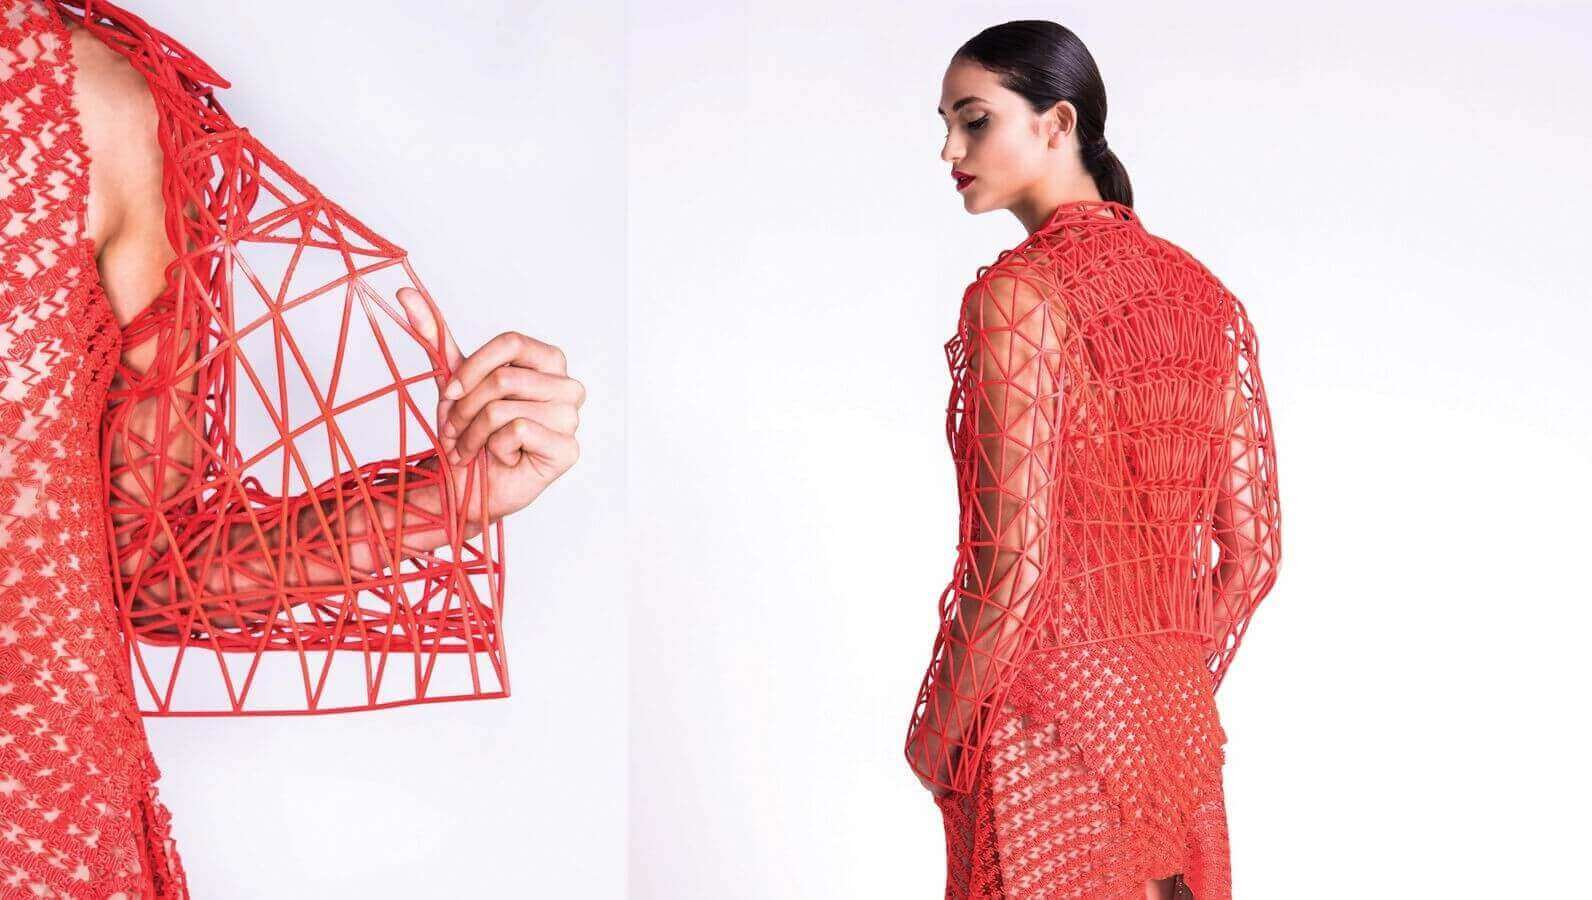 3D Printed Fashion: Designer Printed Her Entire Collection At Home | All3DP